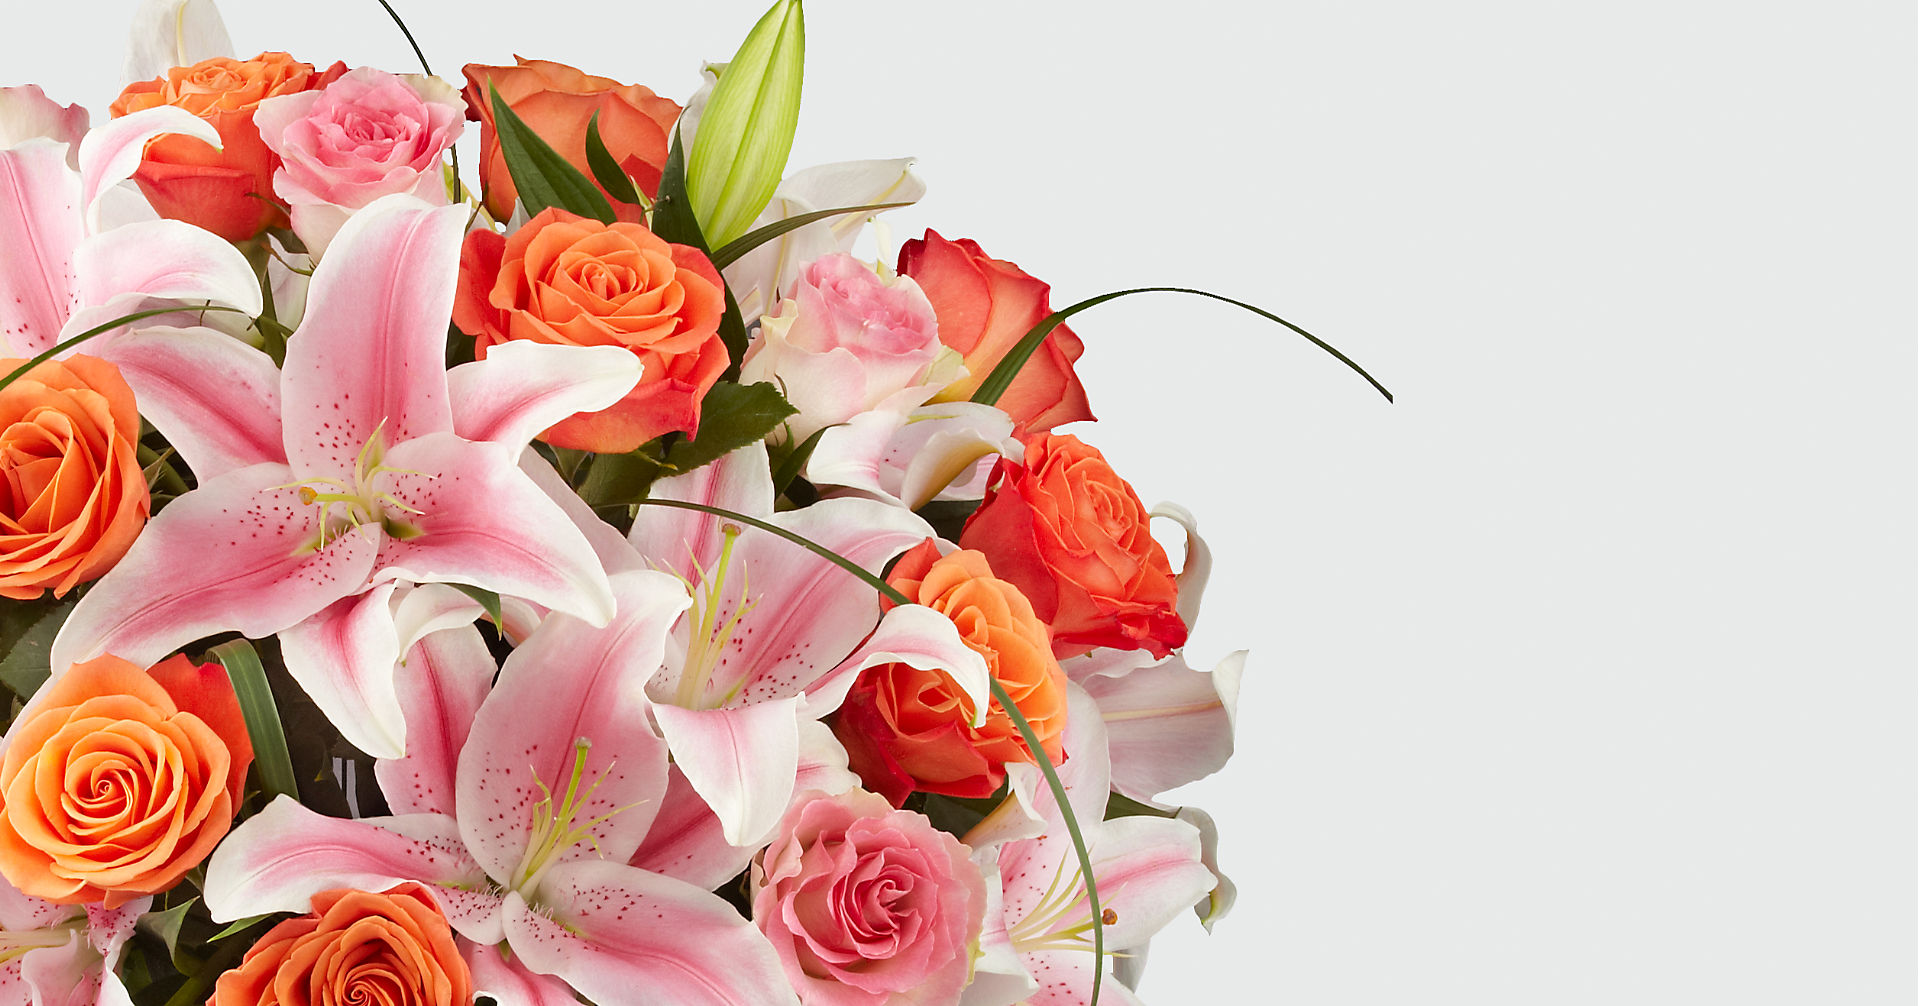 Sweetly Stunning™ Luxury Bouquet - Image 3 Of 3